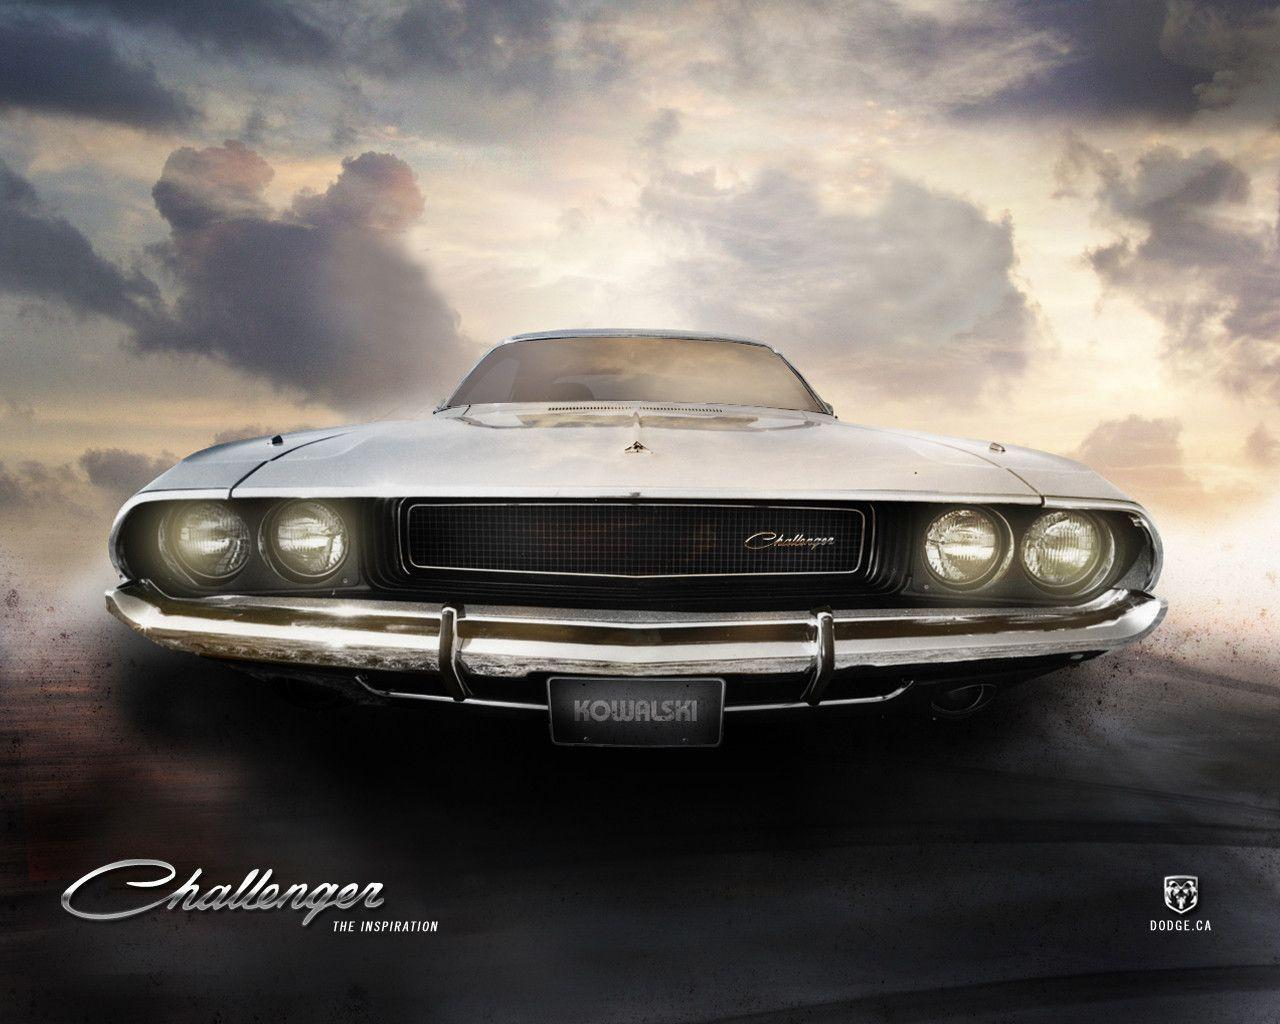 New Dodge Charger 1970 9307 Vehicles HD Wallpapers Widescreen